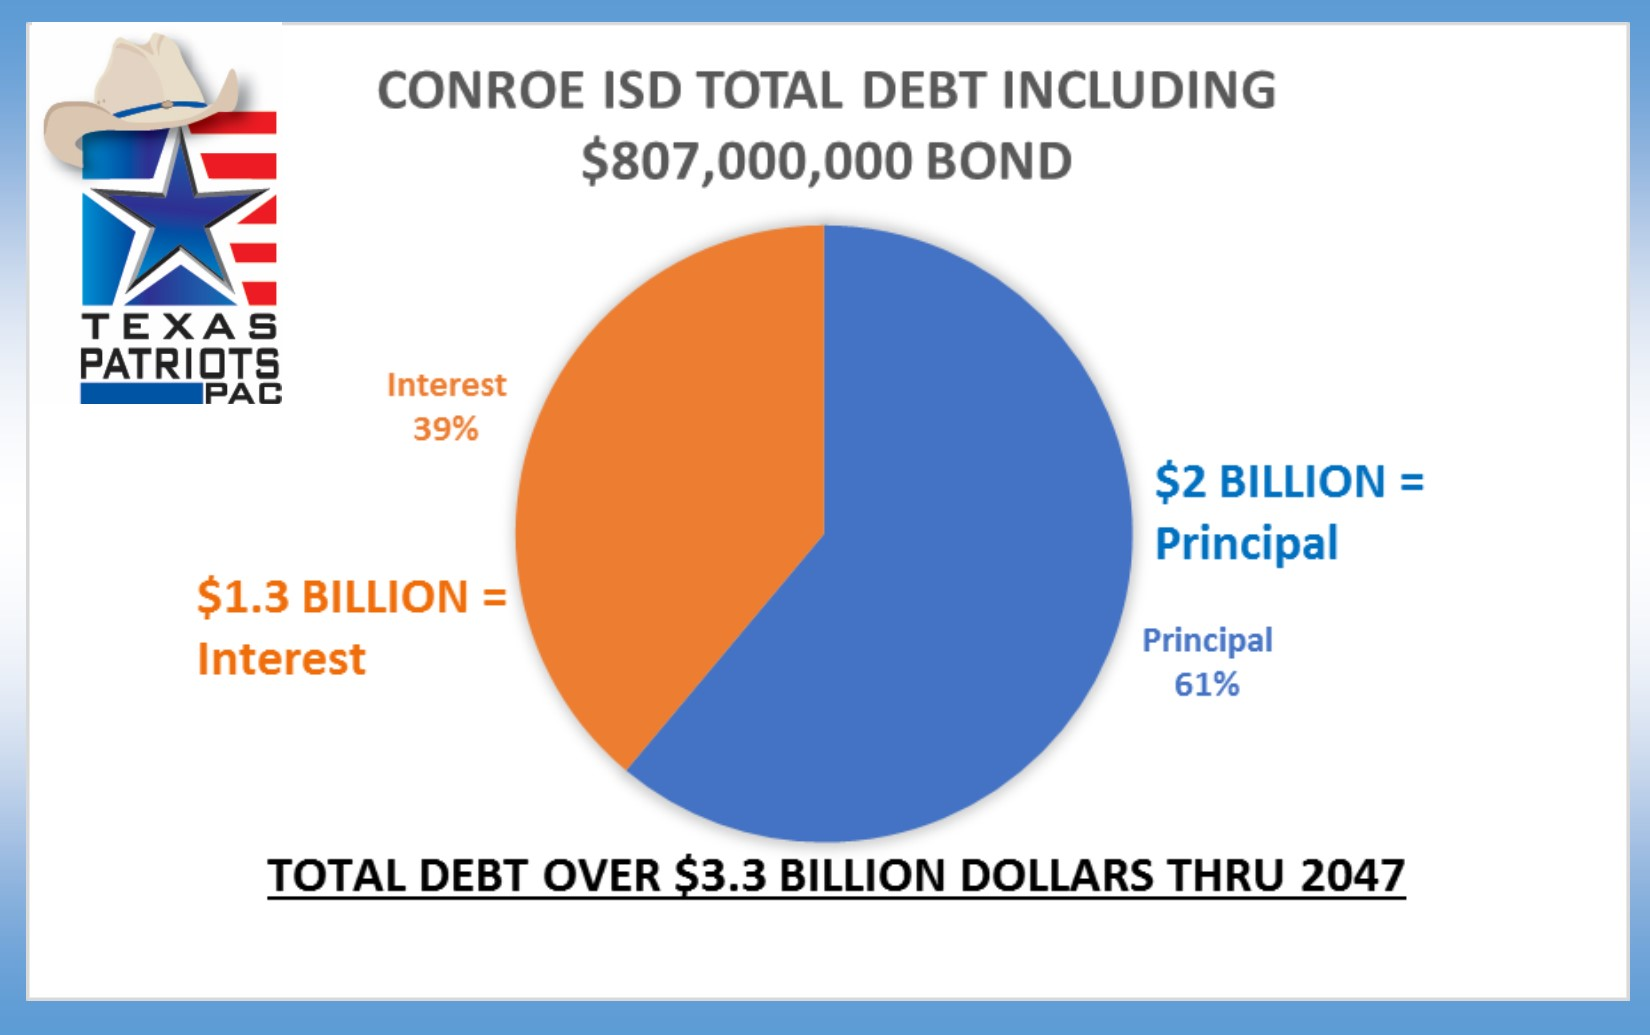 cisd debt interest pie chart.jpg